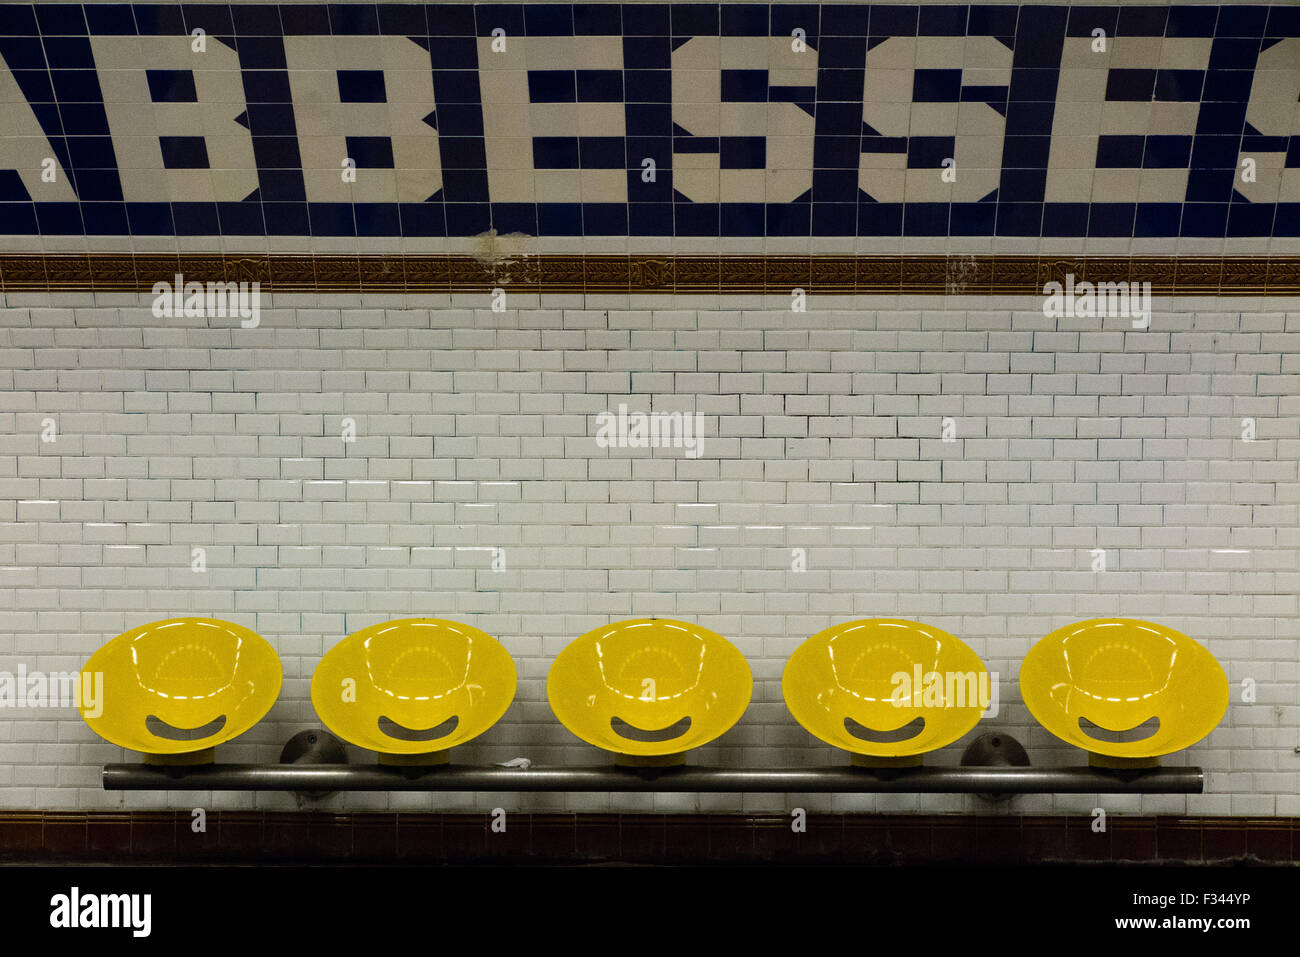 Abesses metro station platform, Paris, France - Stock Image